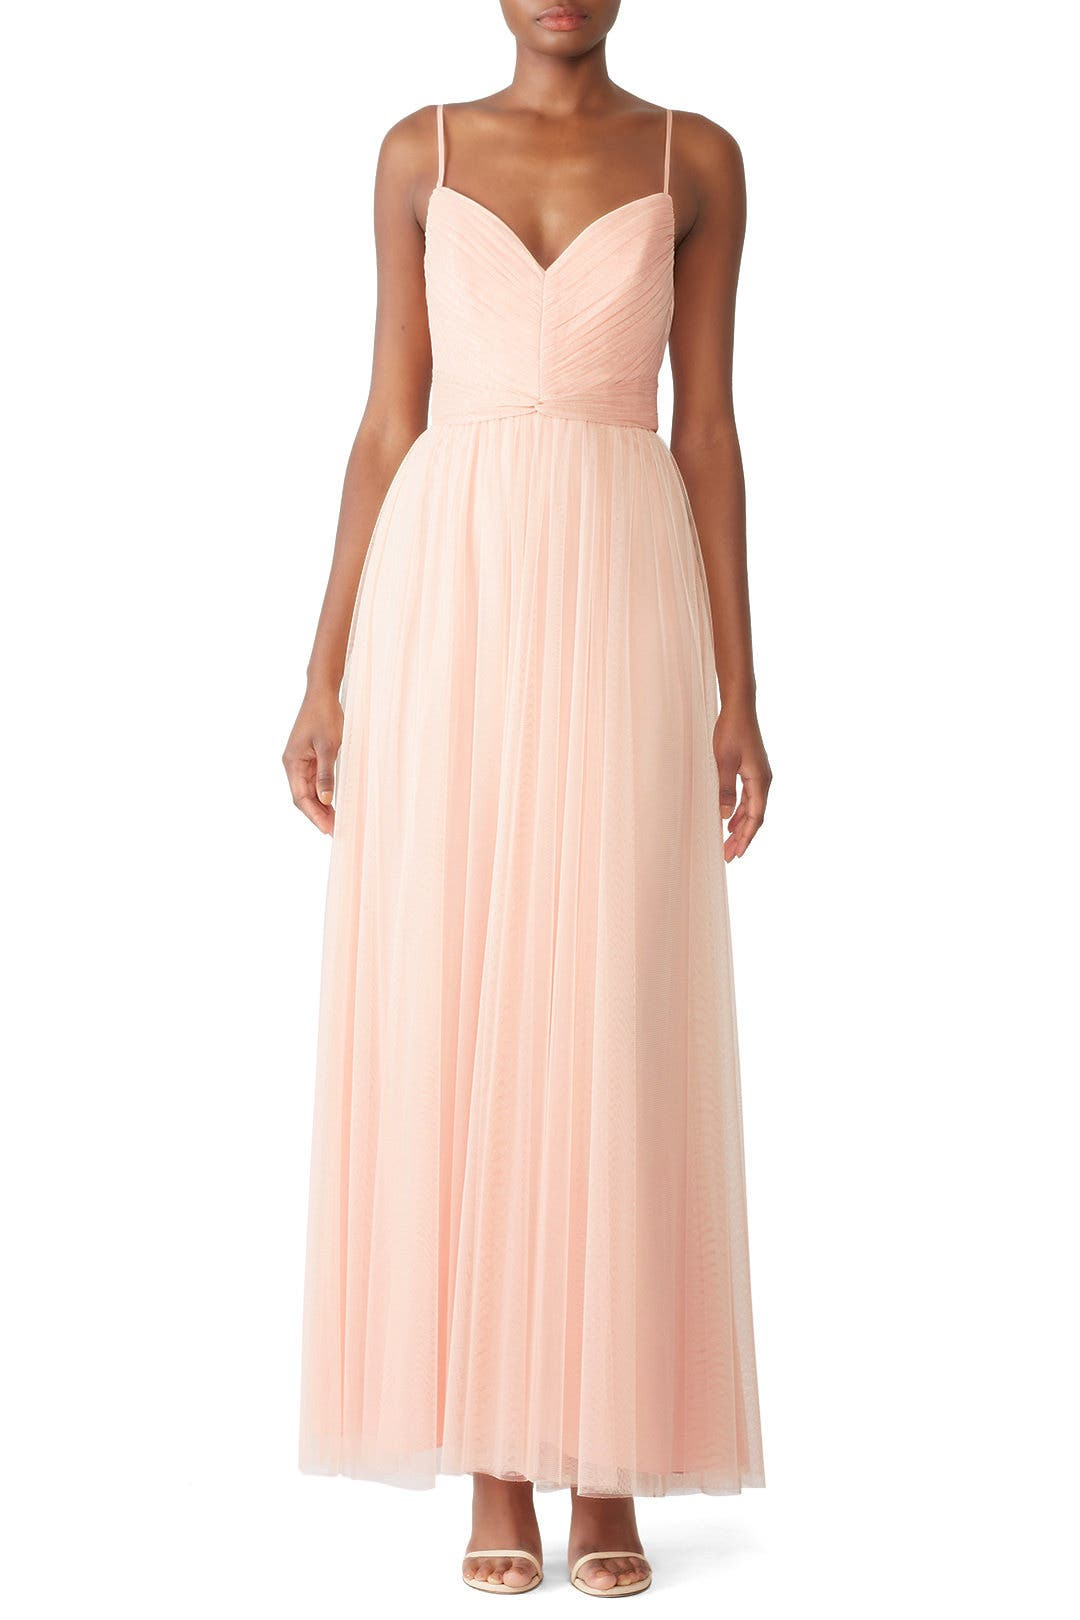 e8ace8a20f Blush Riley Gown by AMSALE for  40 -  78